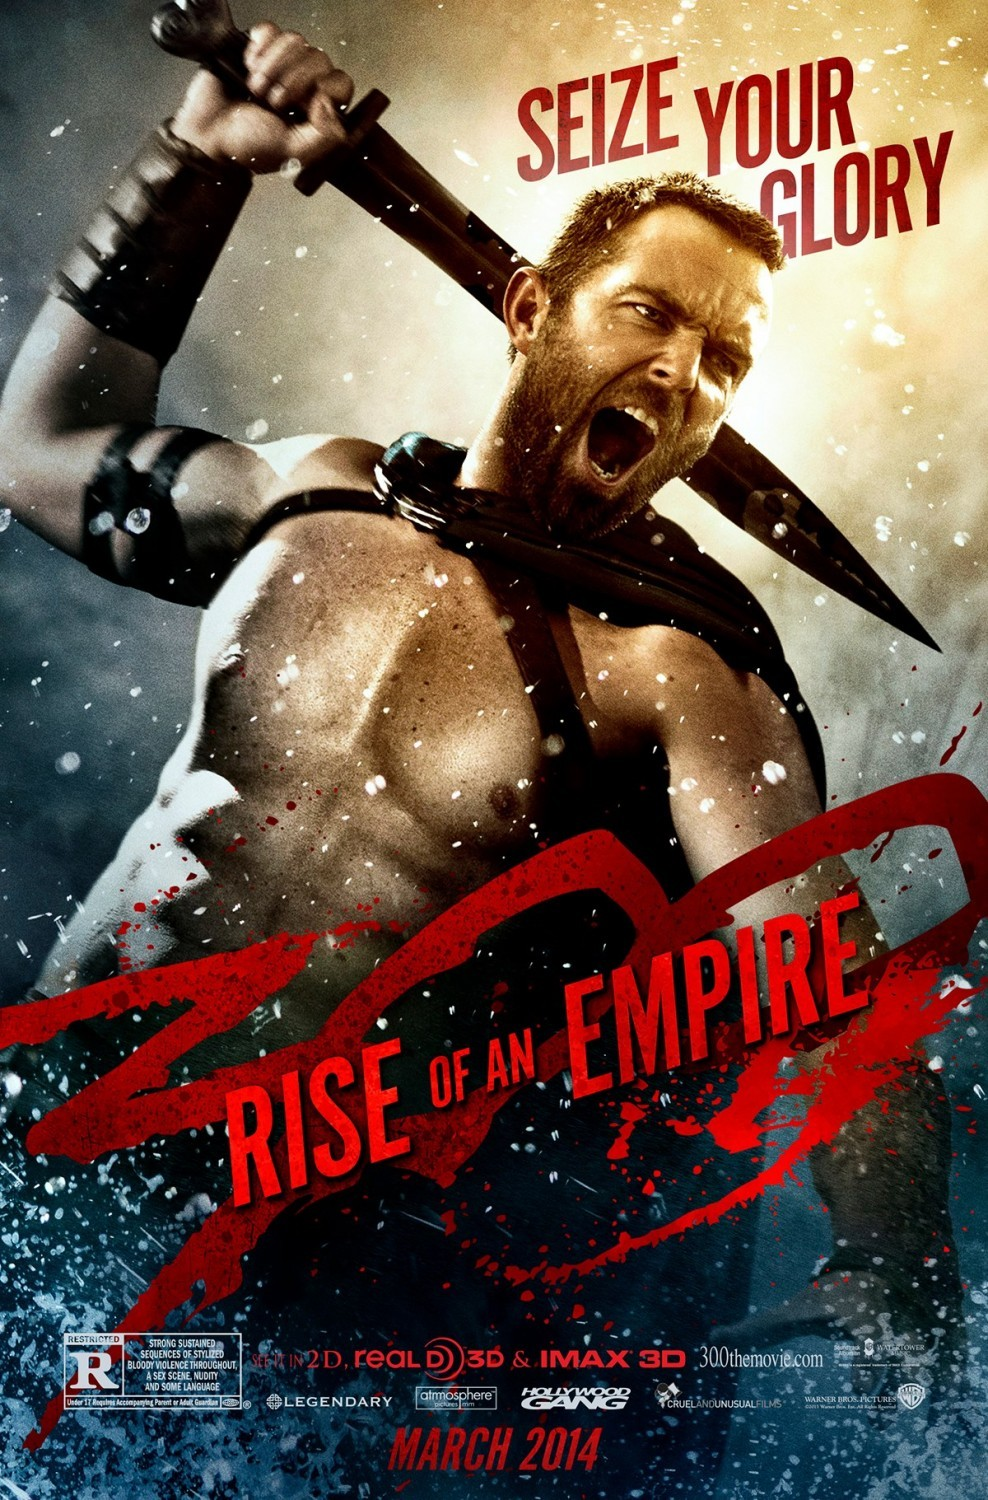 '300 Rise of an Empire'